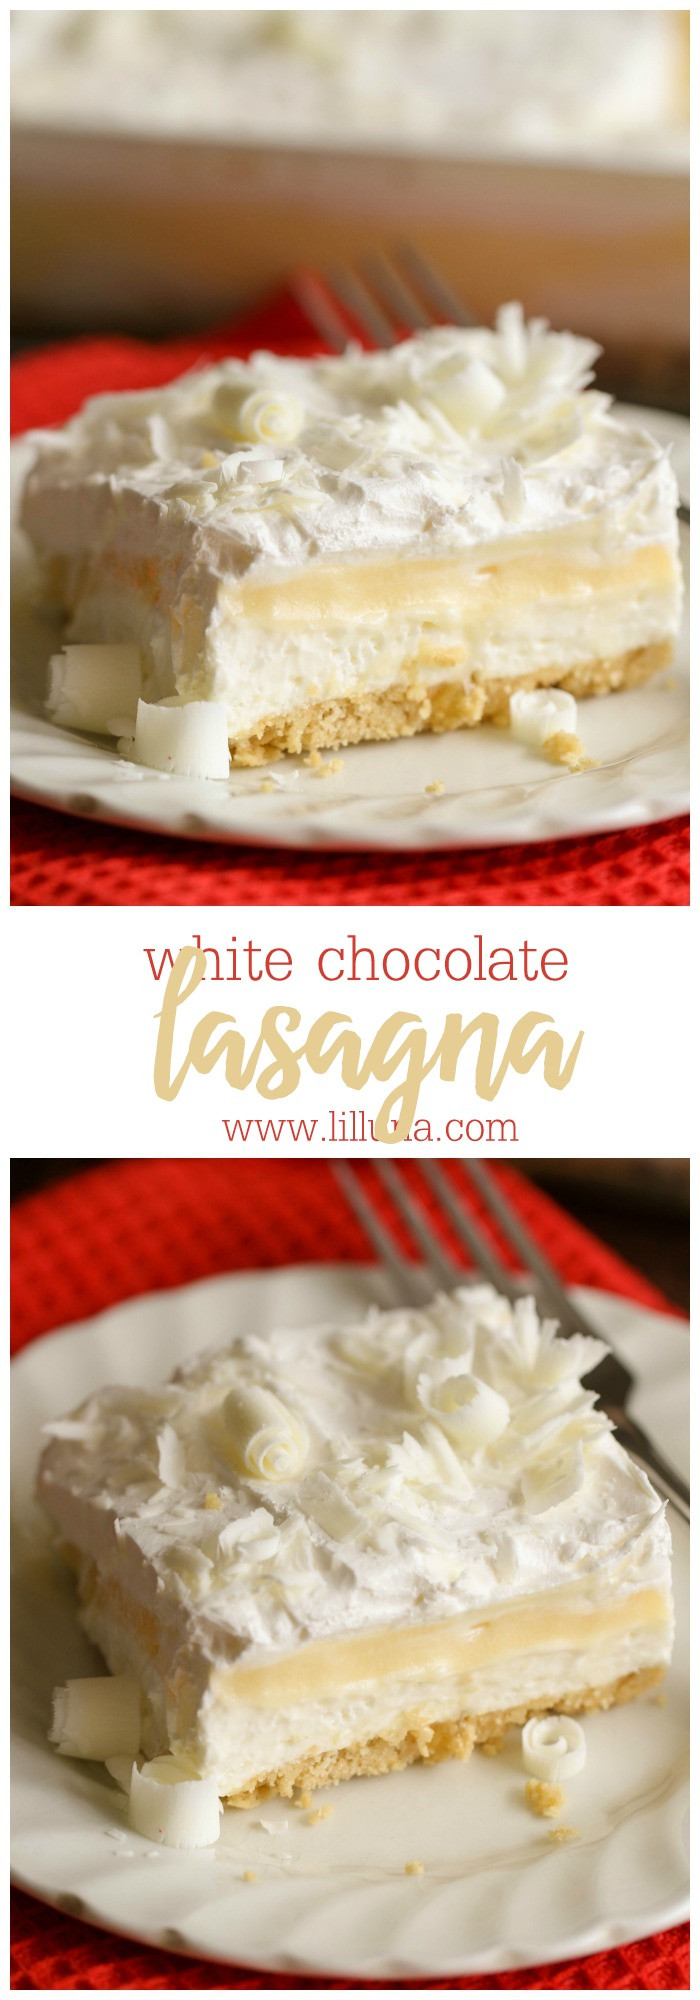 White Chocolate Desserts  White Chocolate Lasagna recipe